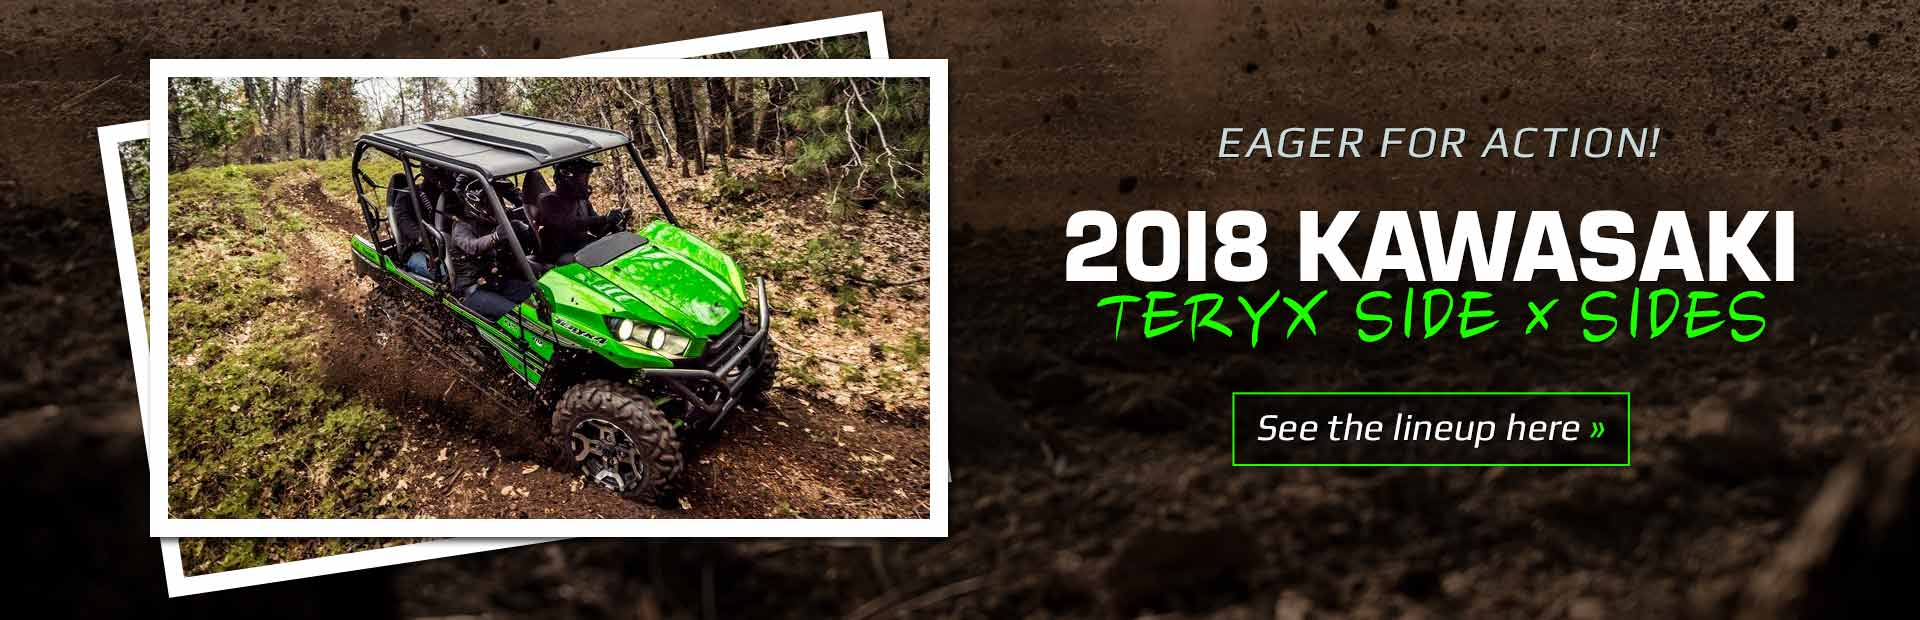 2018 Kawasaki Teryx Side x Sides: Click here to view the models.